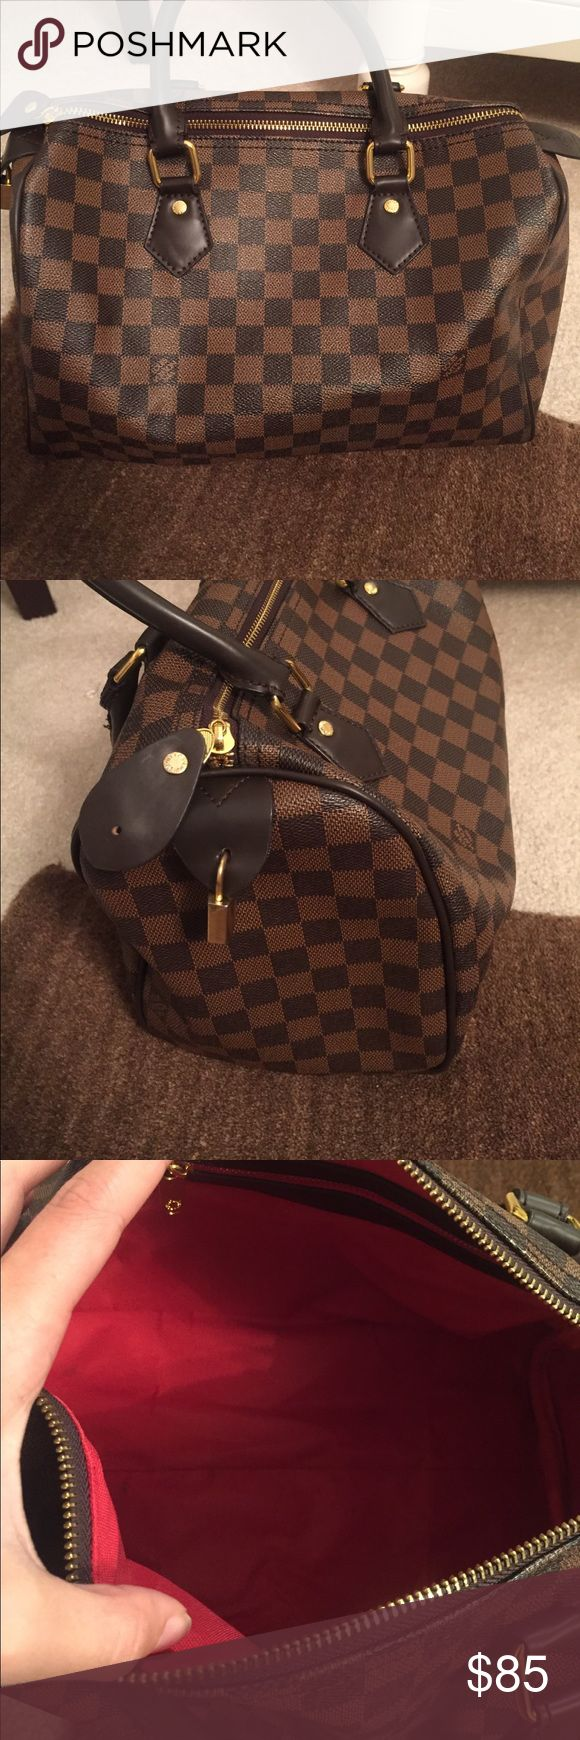 Speedy inspired Louis Vuitton high quality High quality inspired Louis Vuitton speedy bag, no scratches, worn 3 times. Comes with lock and key. Bags Satchels